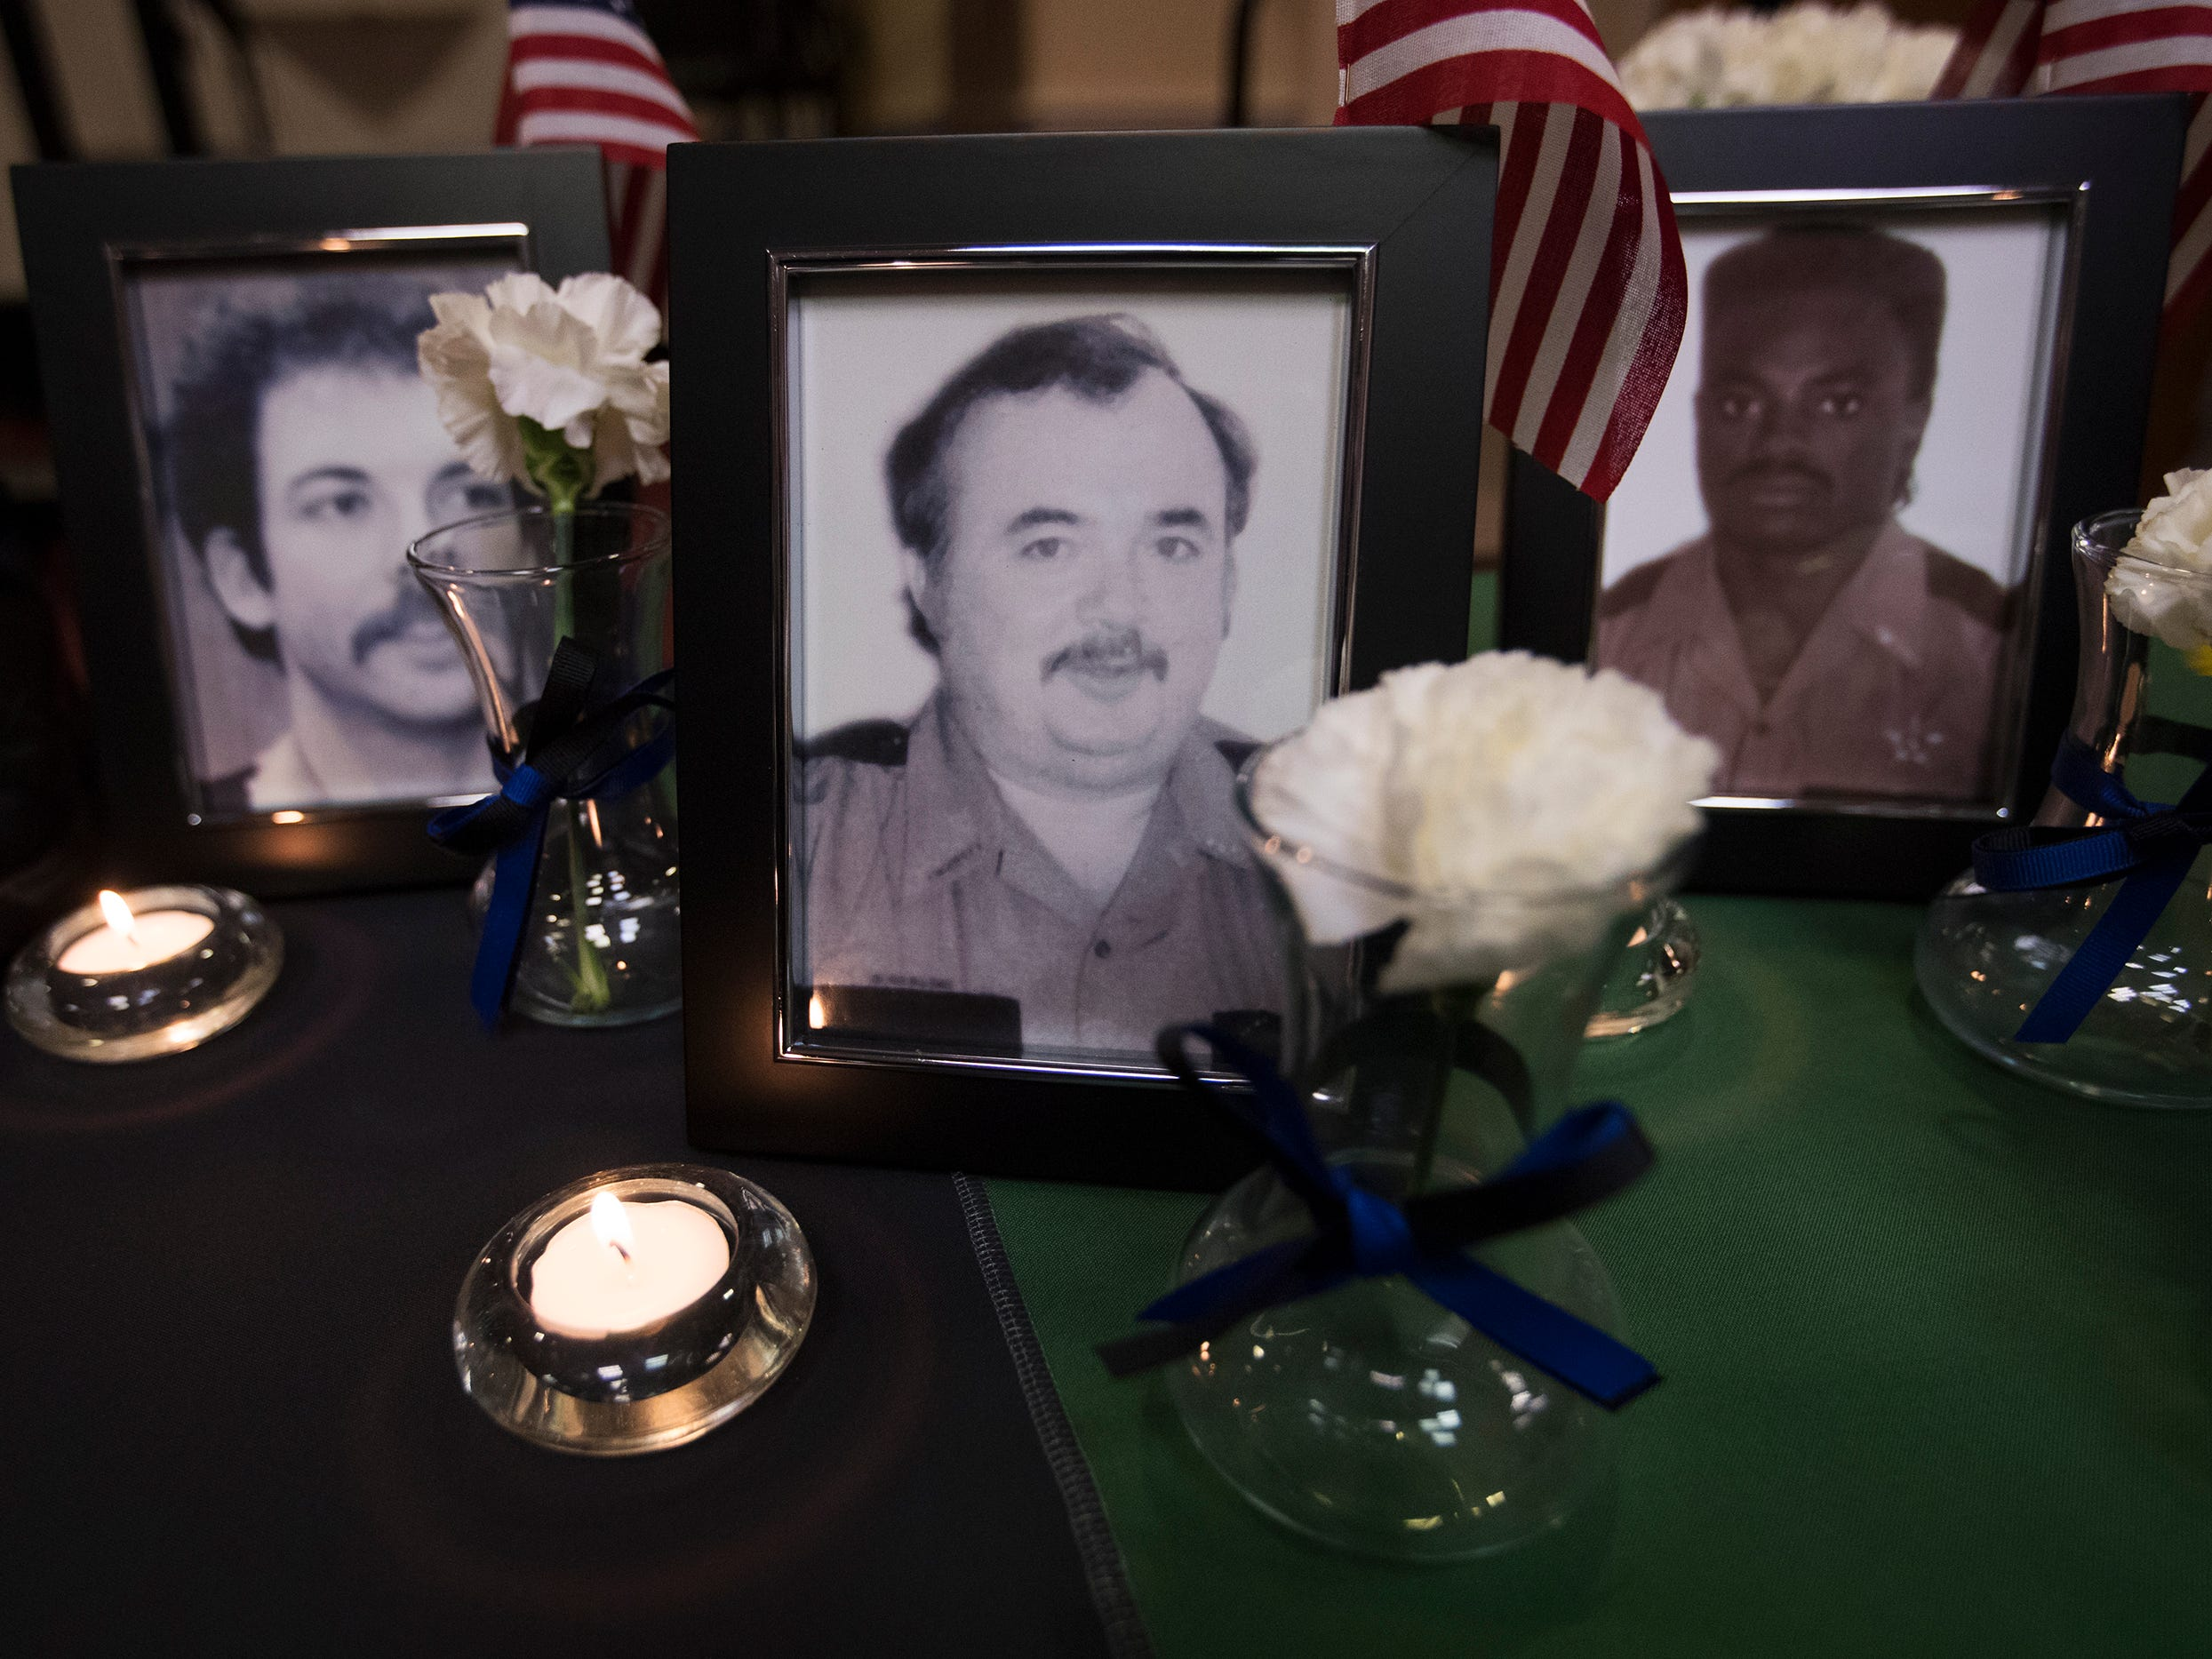 Corporal Mark Caperton, left, Sergeant Roy Arthur Williams, center, and Sergeant Joe Nathan Jones, were among the local law enforcement officers killed in the line of duty, that were honored at a memorial on Wednesday at East Naples United Methodist Church. Thirteen officers have been killed in Collier County since 1928.